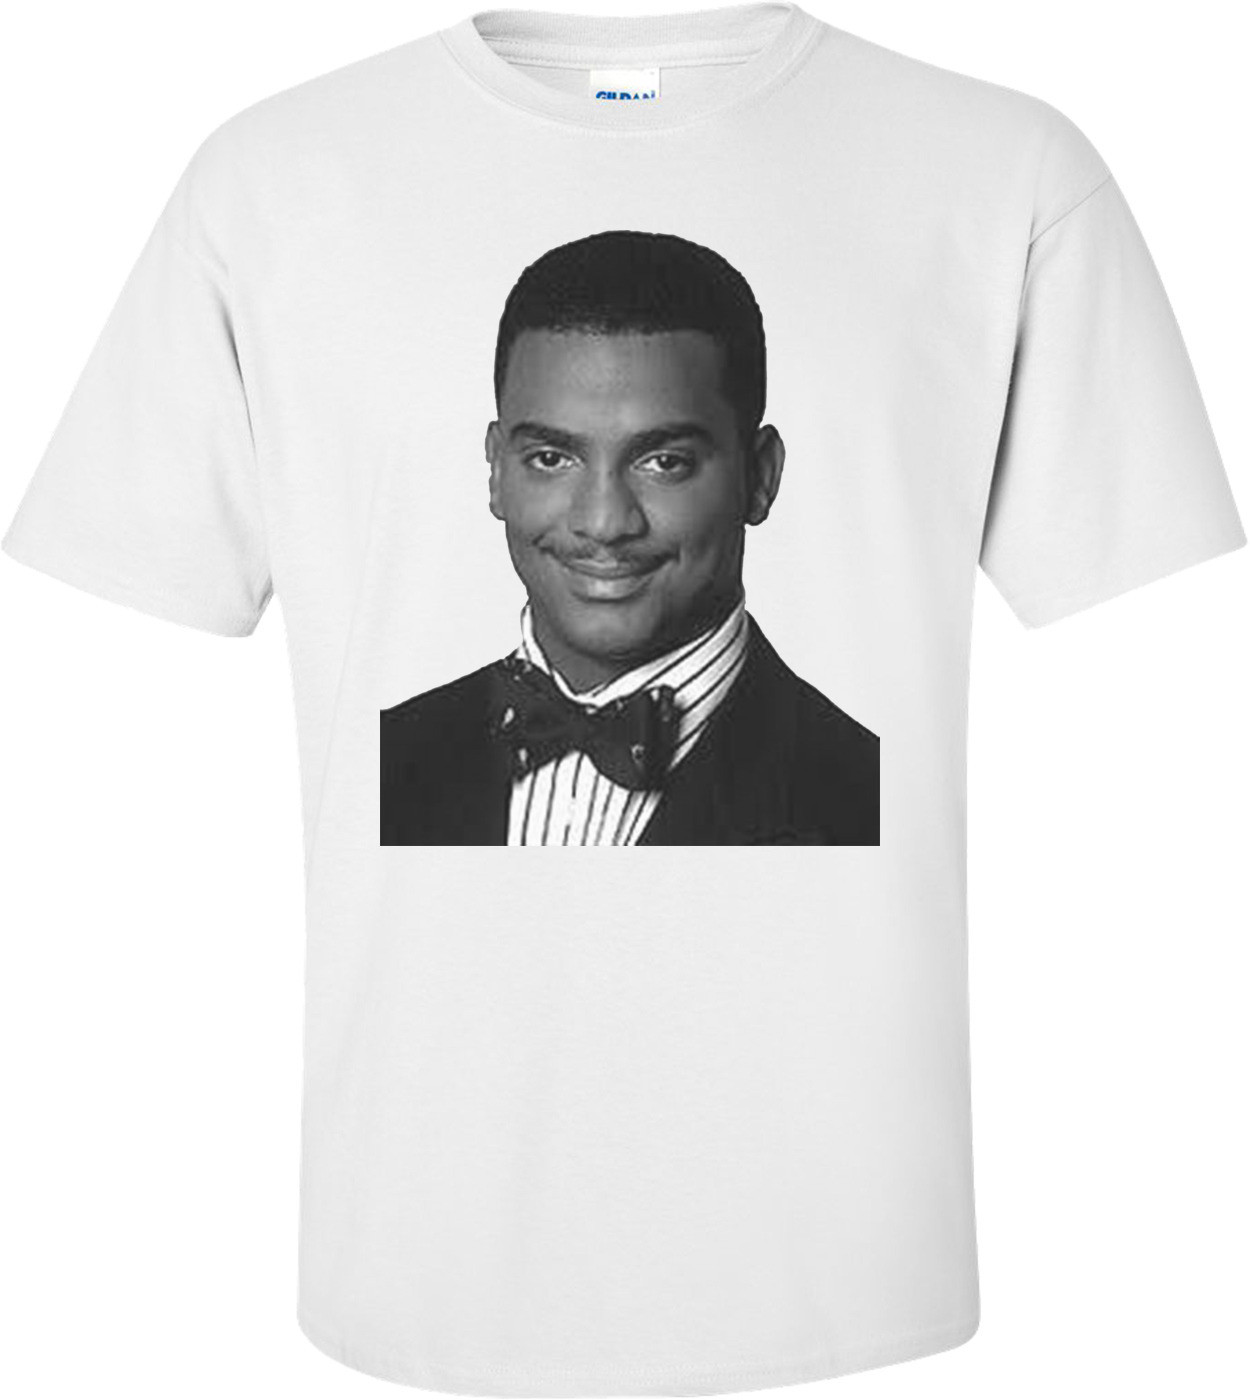 Carlton Banks Fresh Prince Of Bel Air Shirt